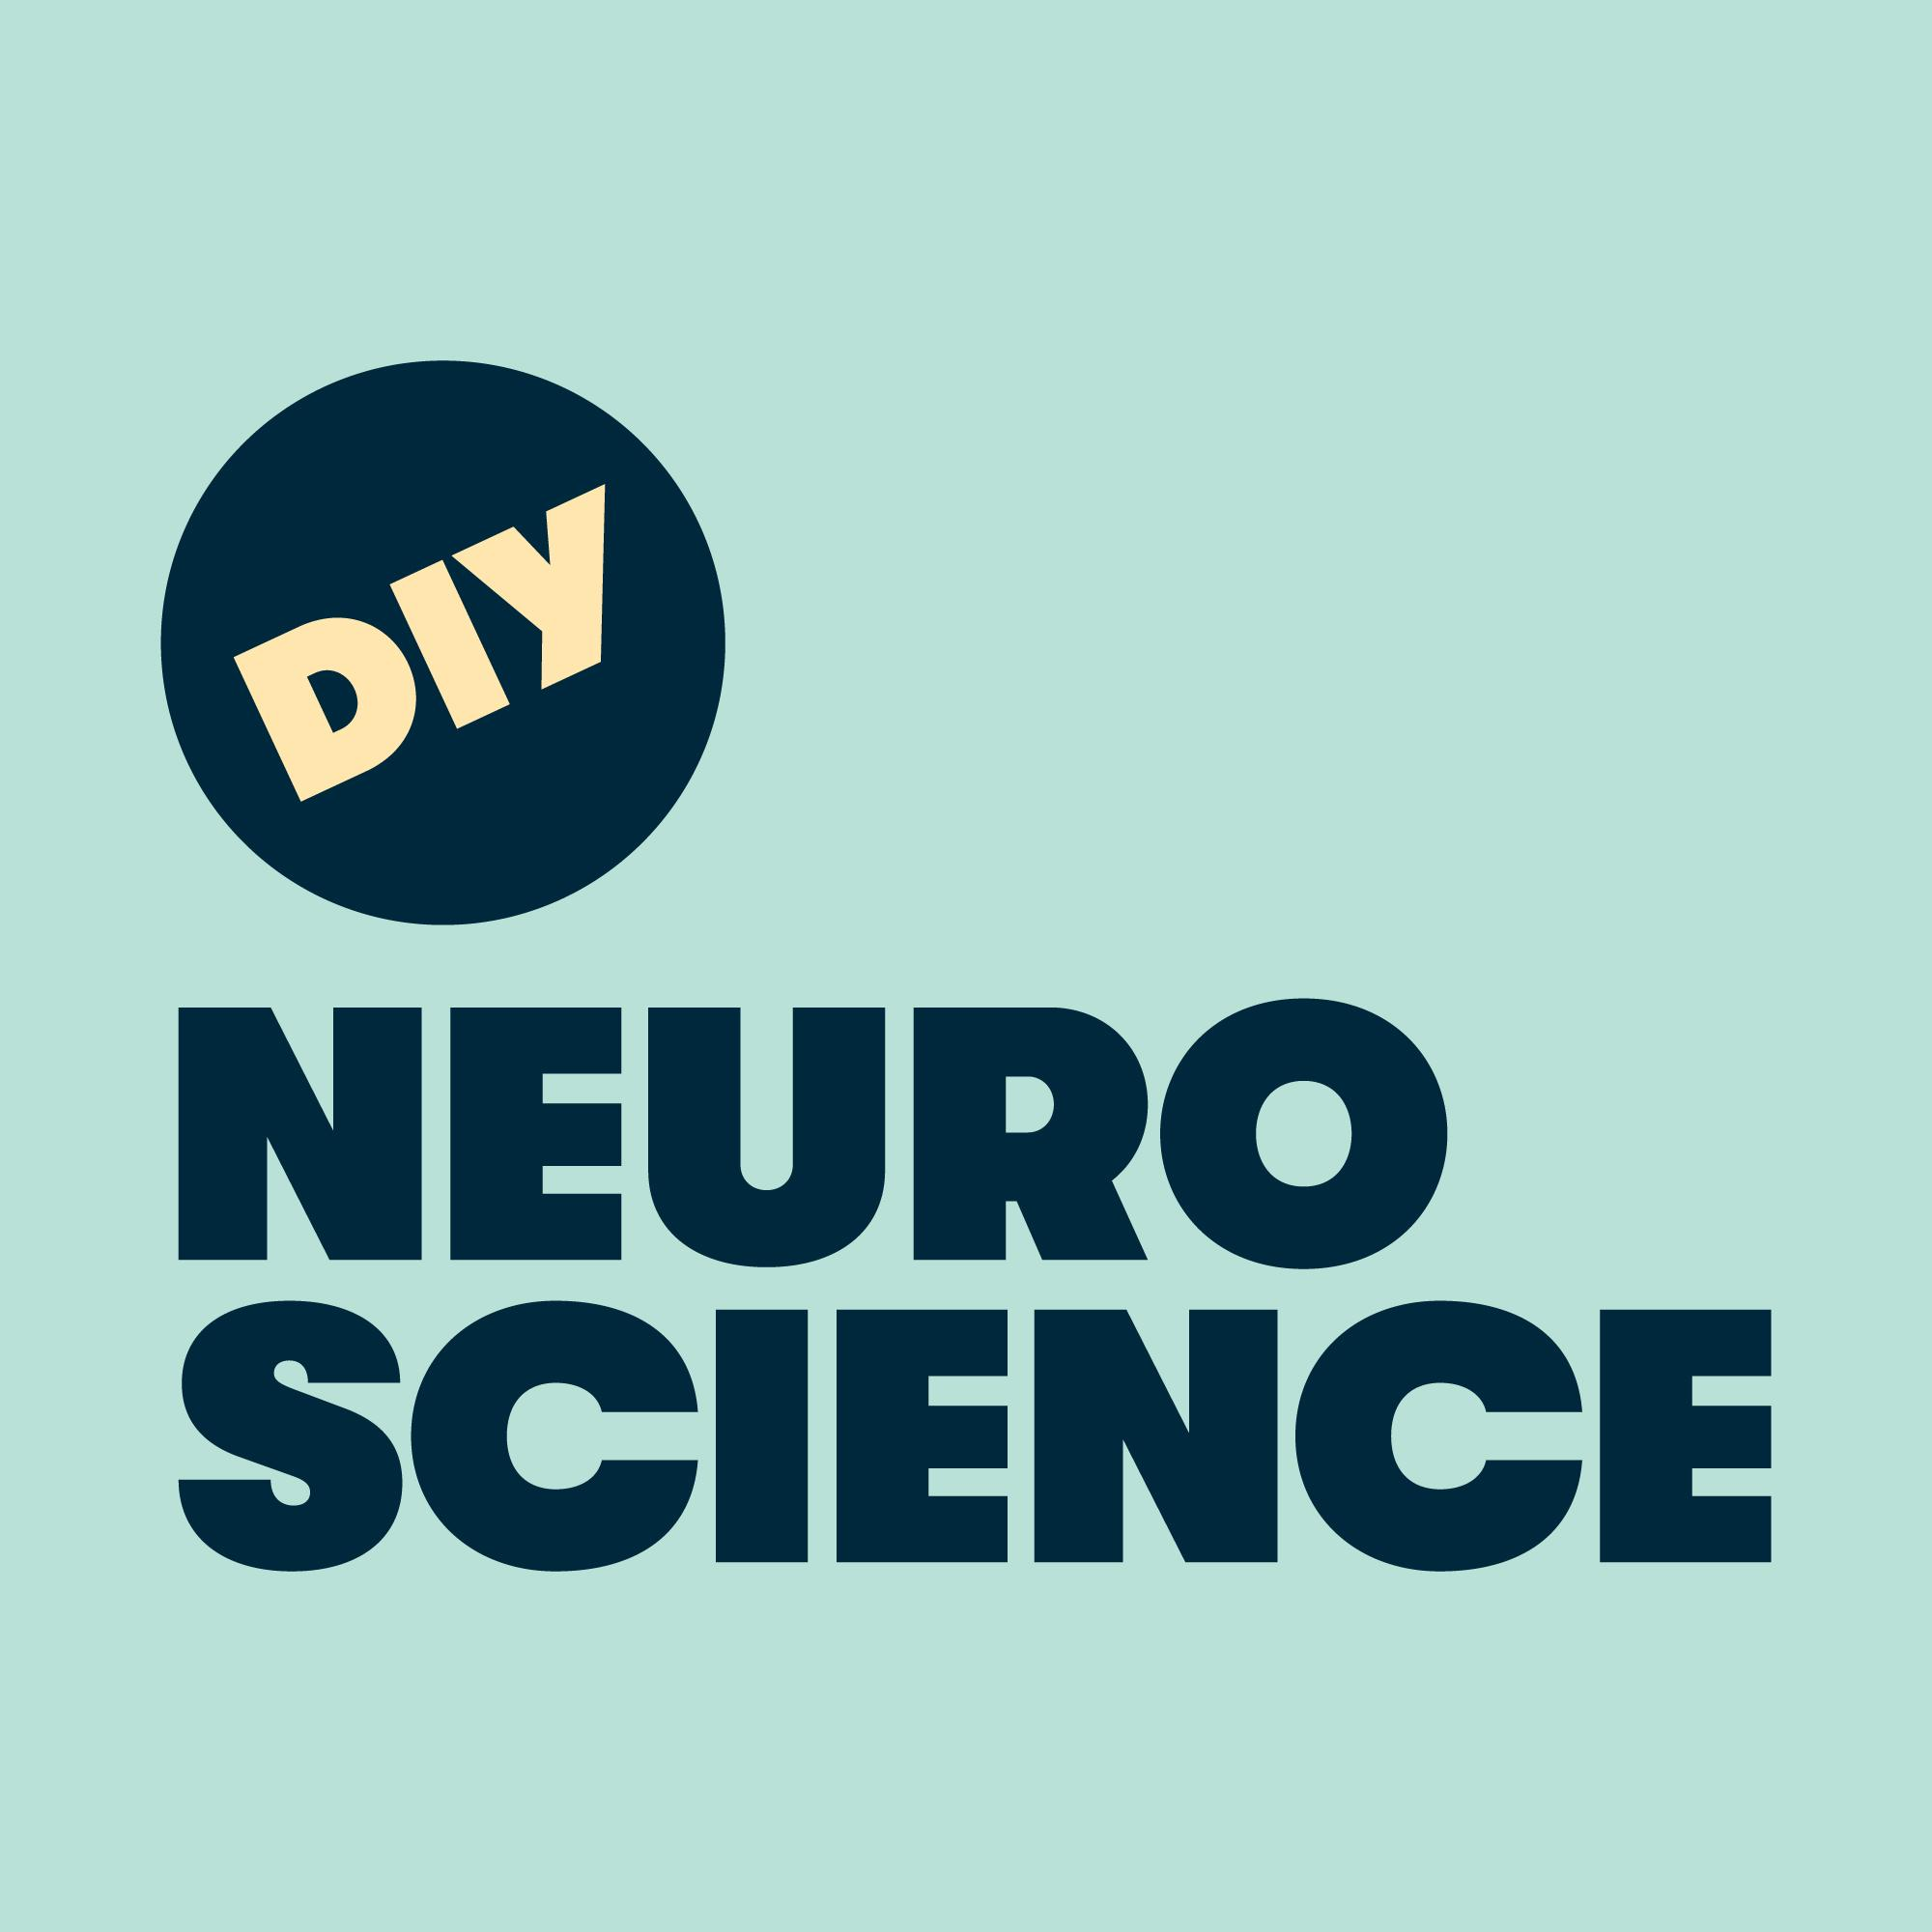 DIY Neuroscience